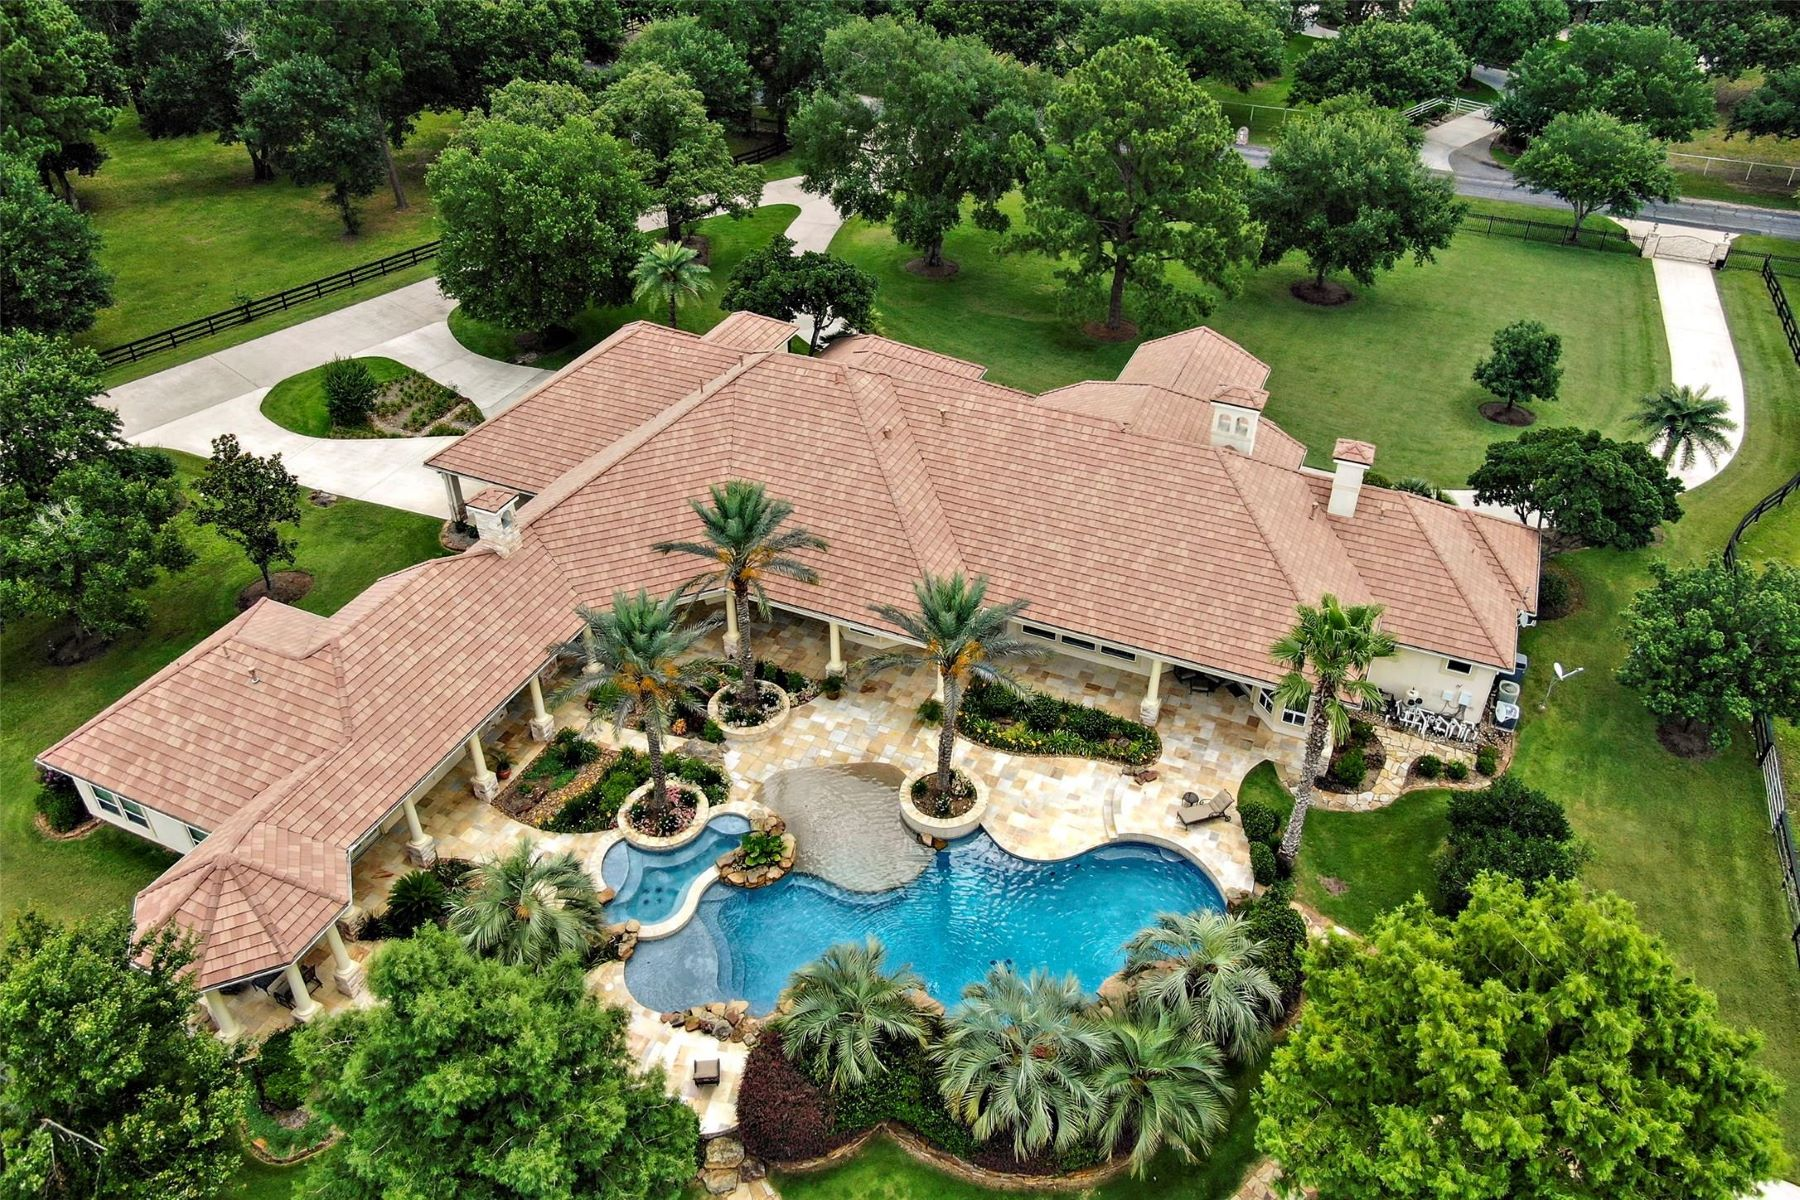 Single Family Homes for Sale at 18455 Cypress Rosehill Road Cypress, Texas 77429 United States